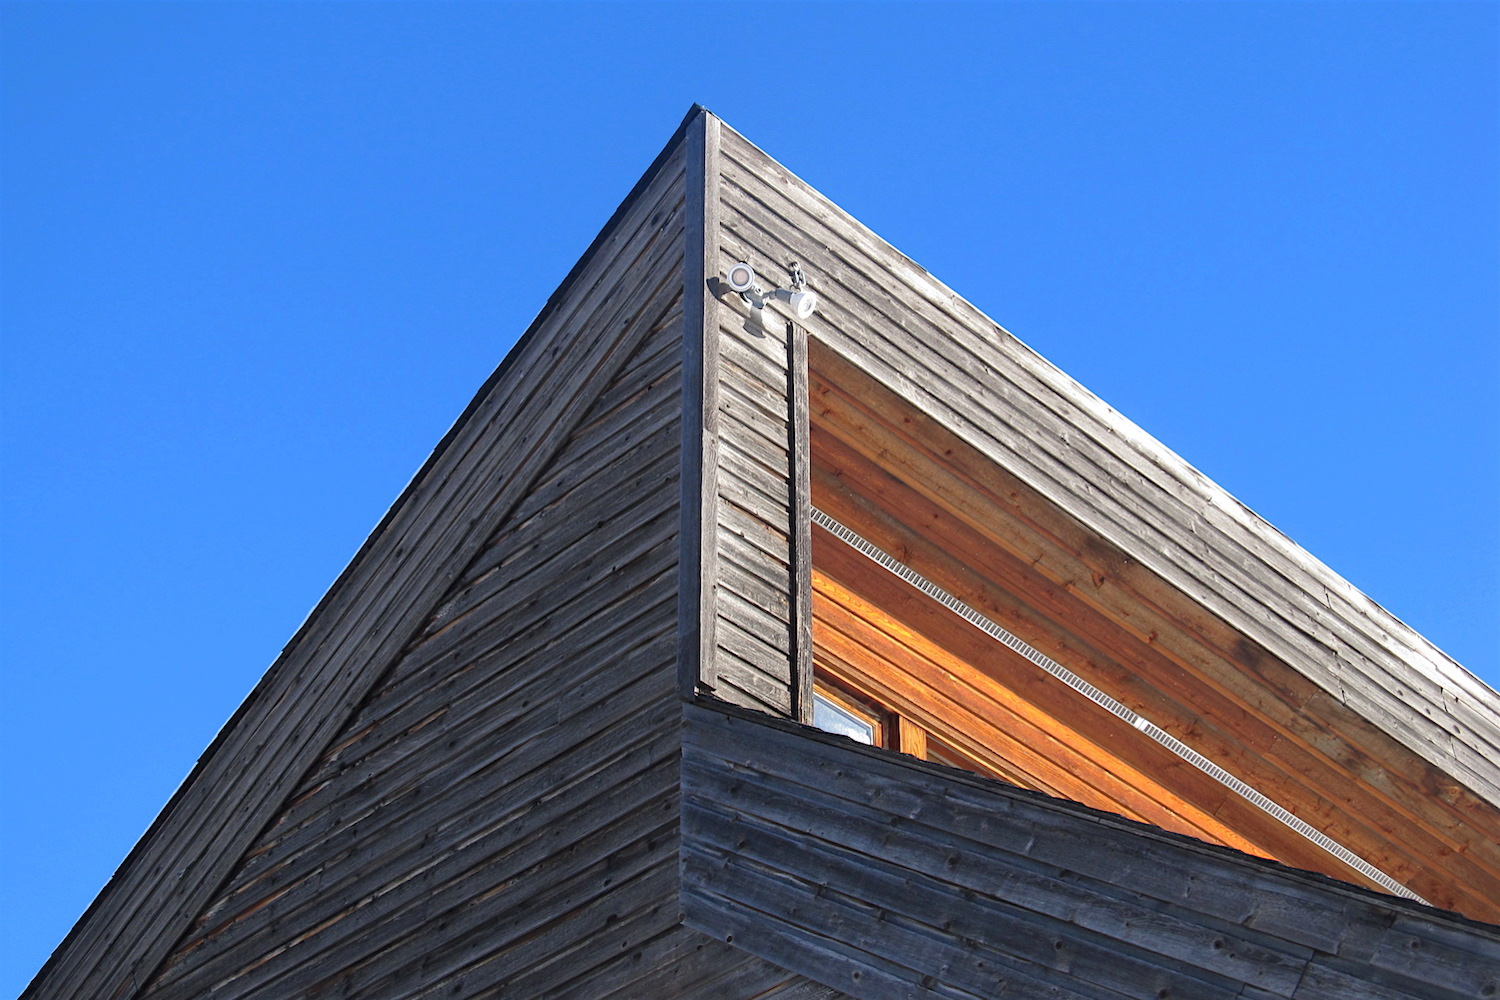 The exterior of Solace House is clad in untreated Western Red Cedar  (Thuja plicata) , which contains natural preservatives that resist moisture, decay, and insect damage. Over time, the cedar develops a beautiful silvery gray patina.